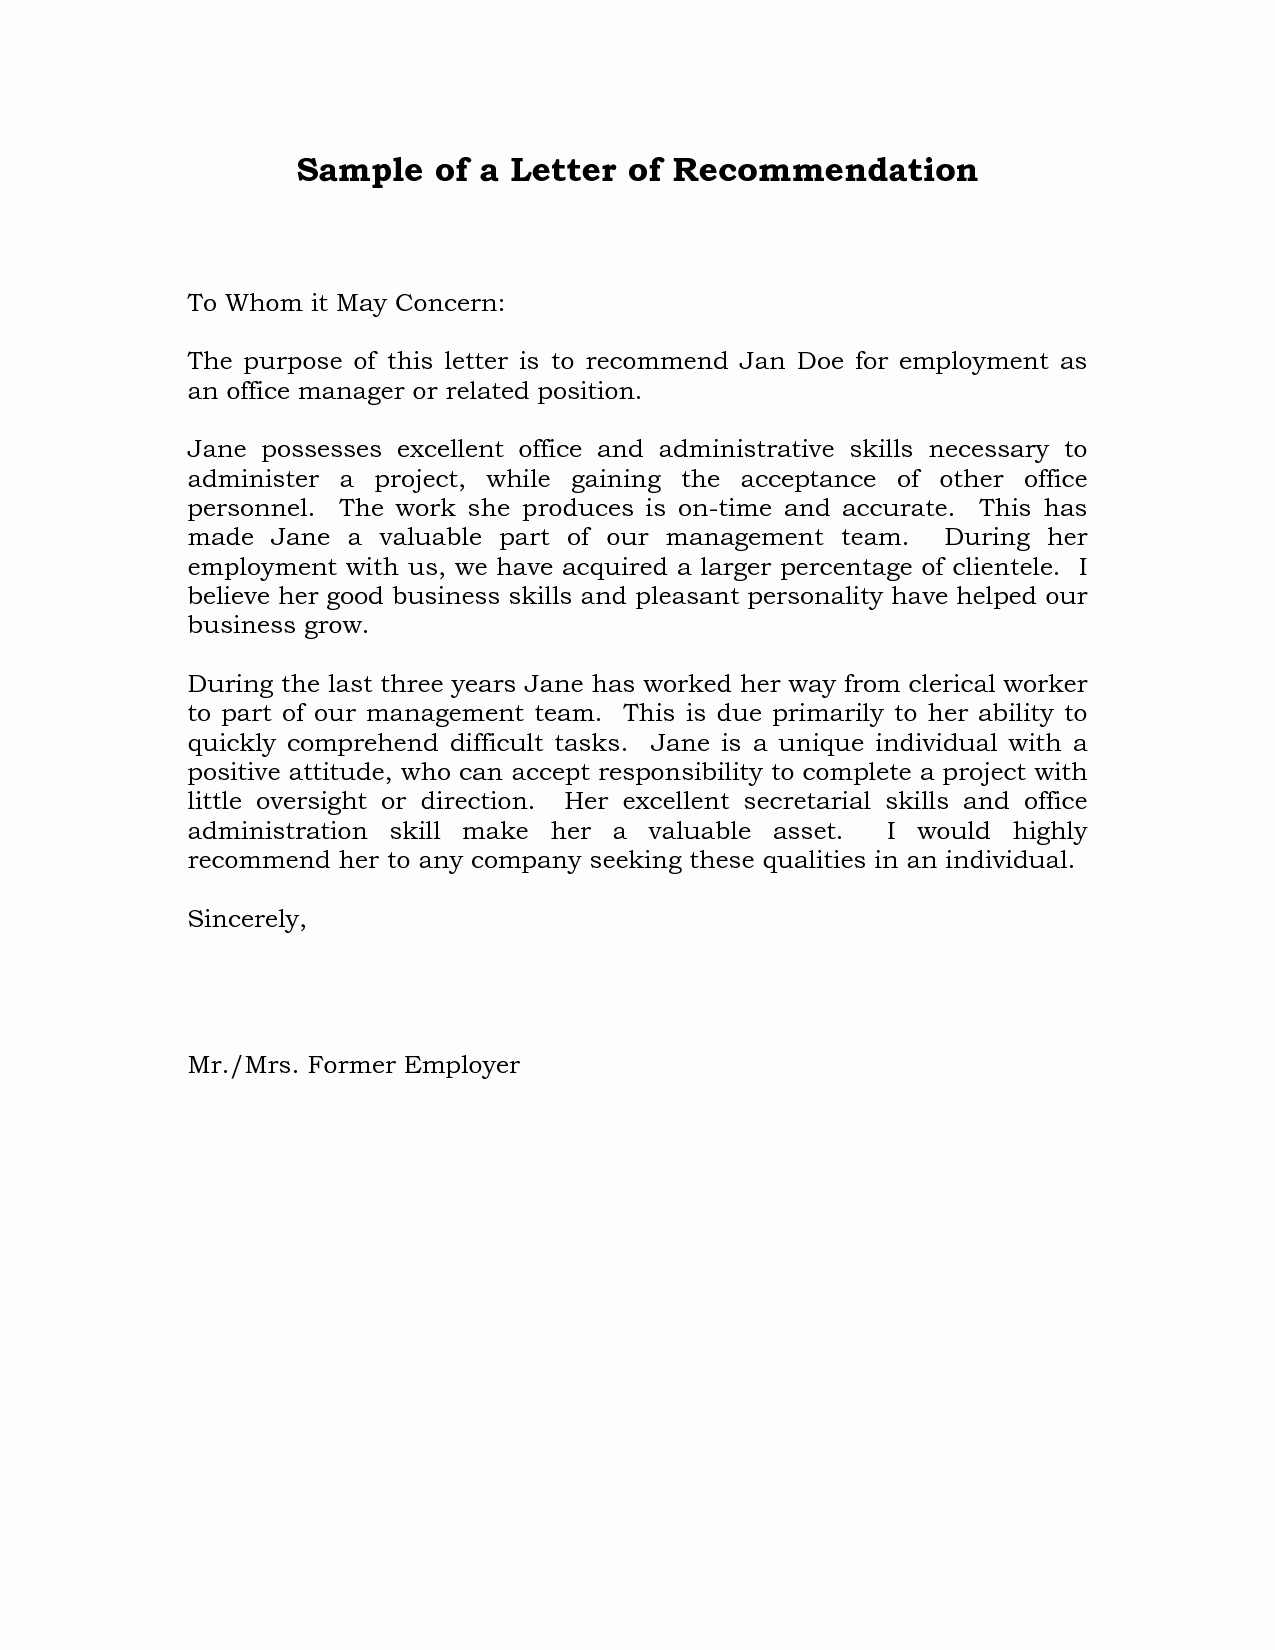 Sample Professional Letter Of Recommendation Fresh Reference Letter Of Re Mendation Sample